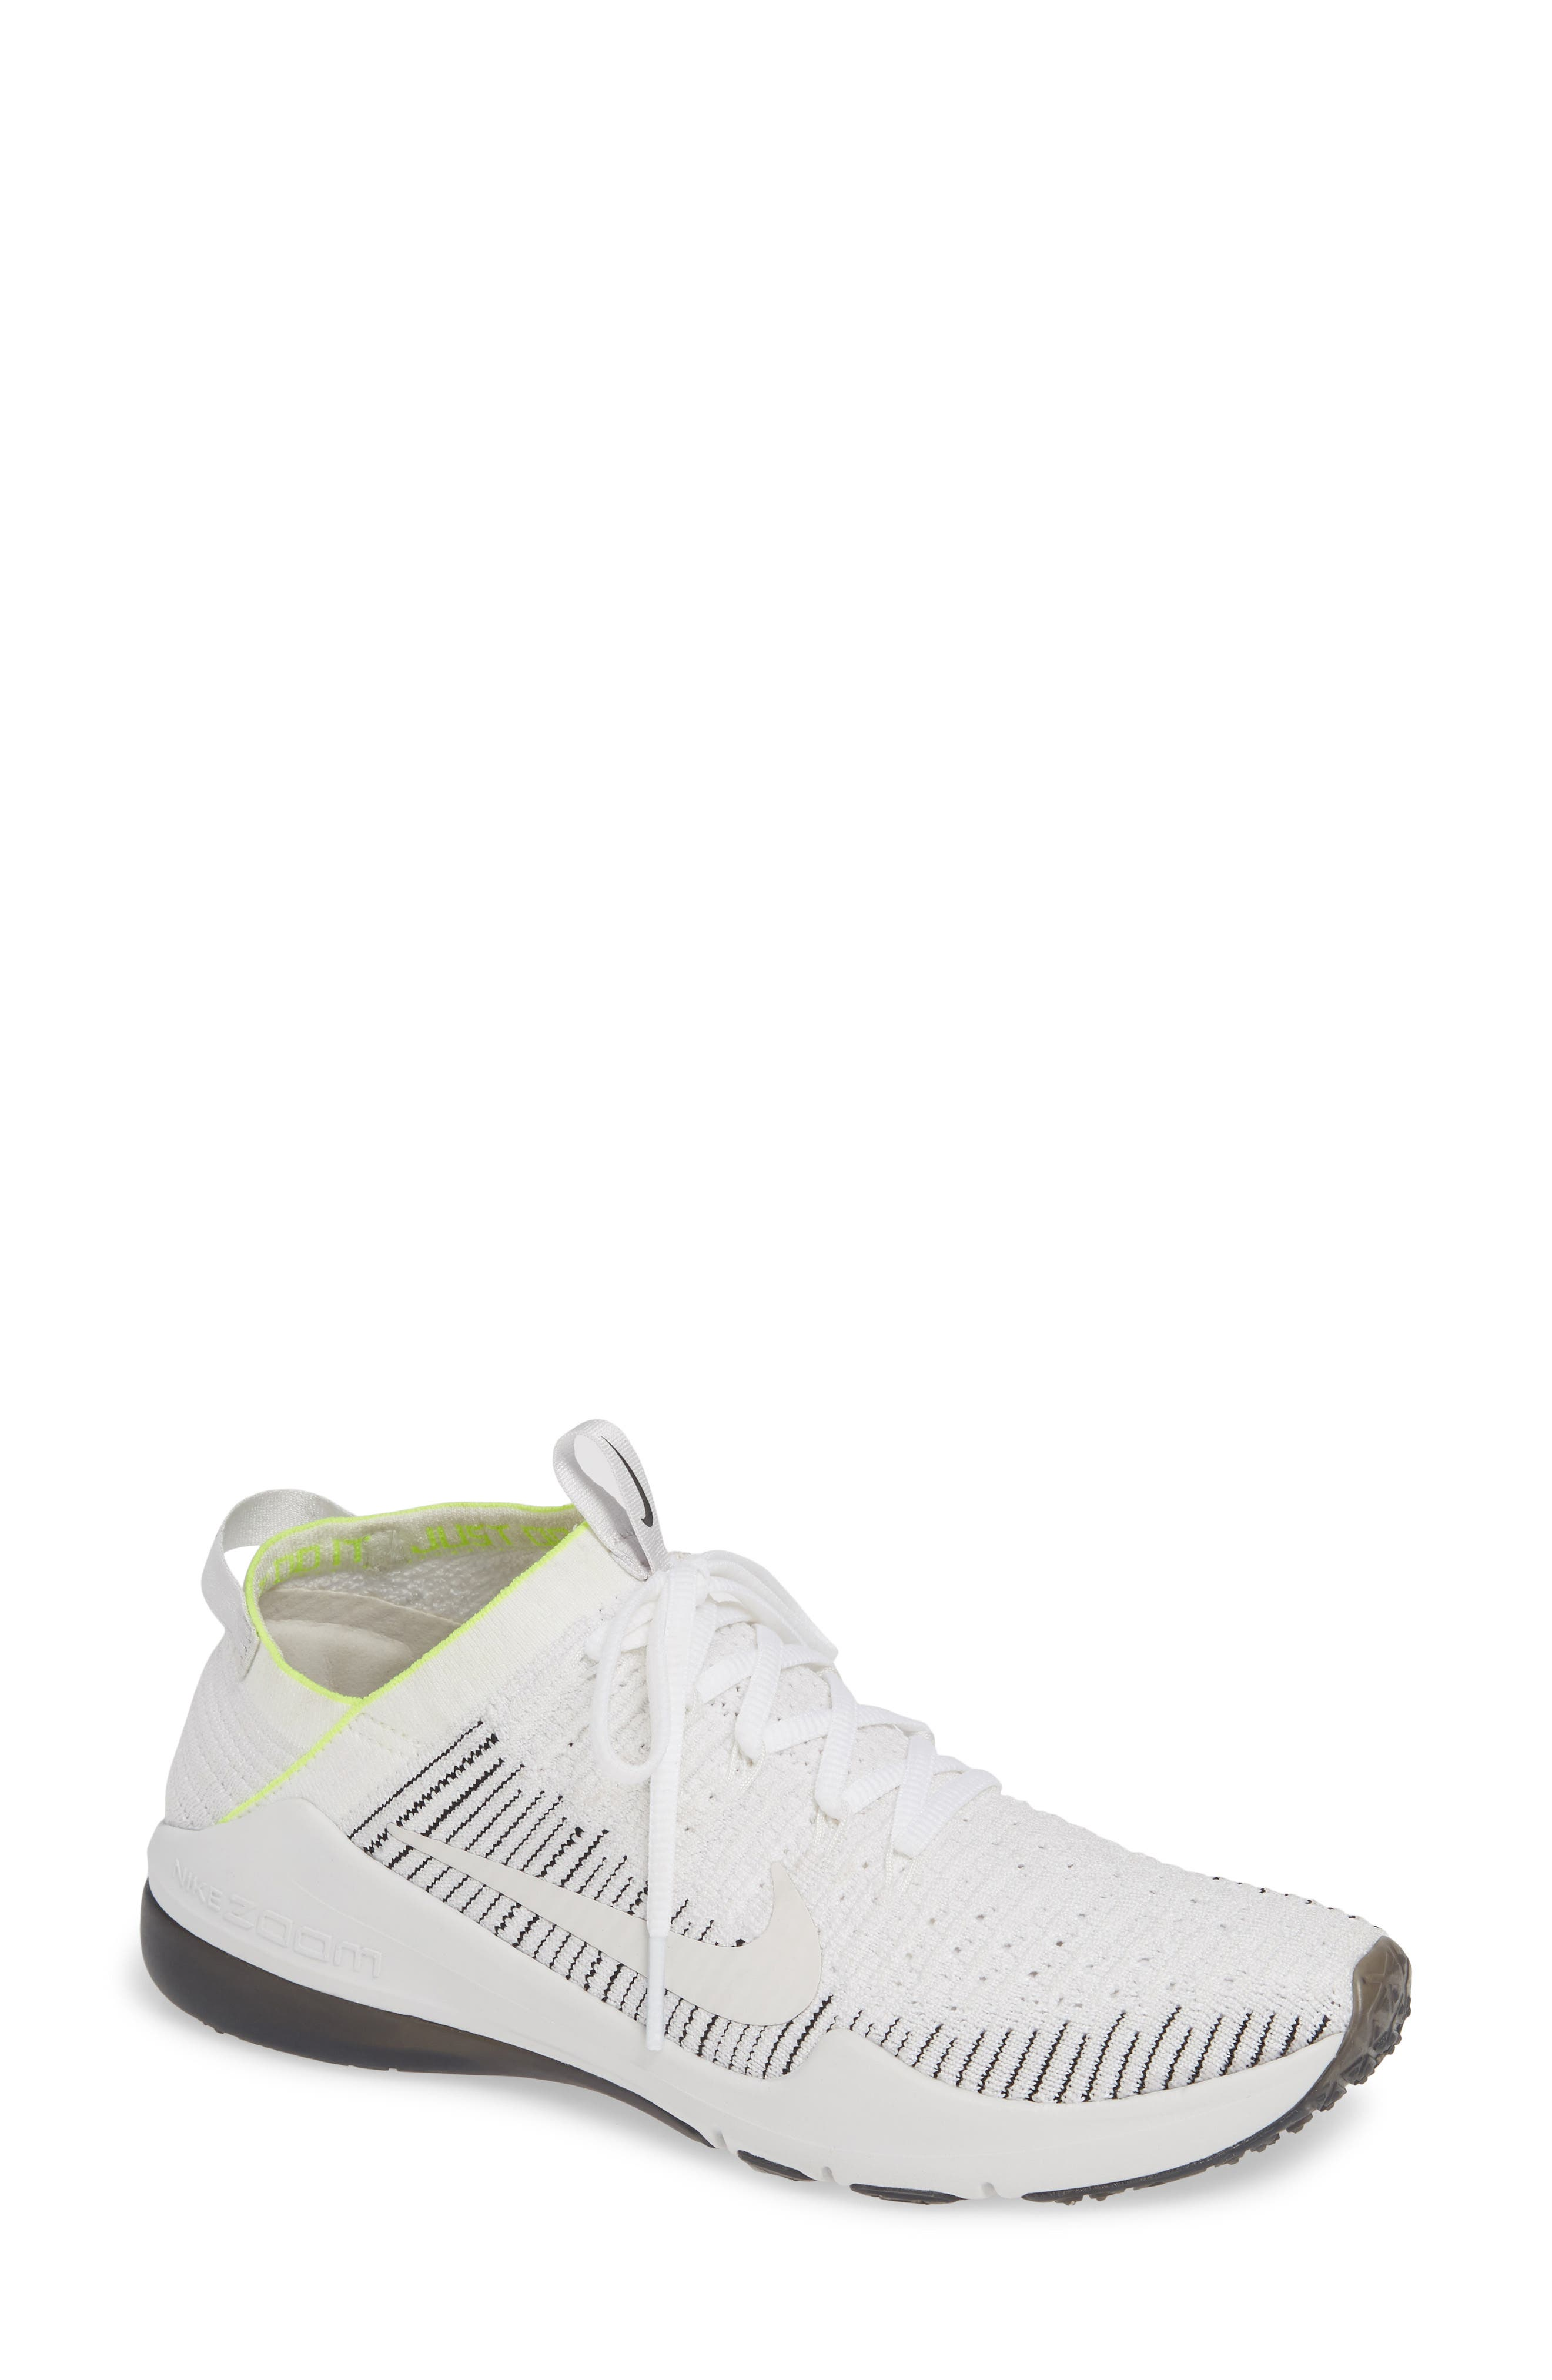 NIKE Air Zoom Fearless Flyknit 2 Training Sneaker, Main, color, WHITE/ PLATINUM TINT/ BLACK